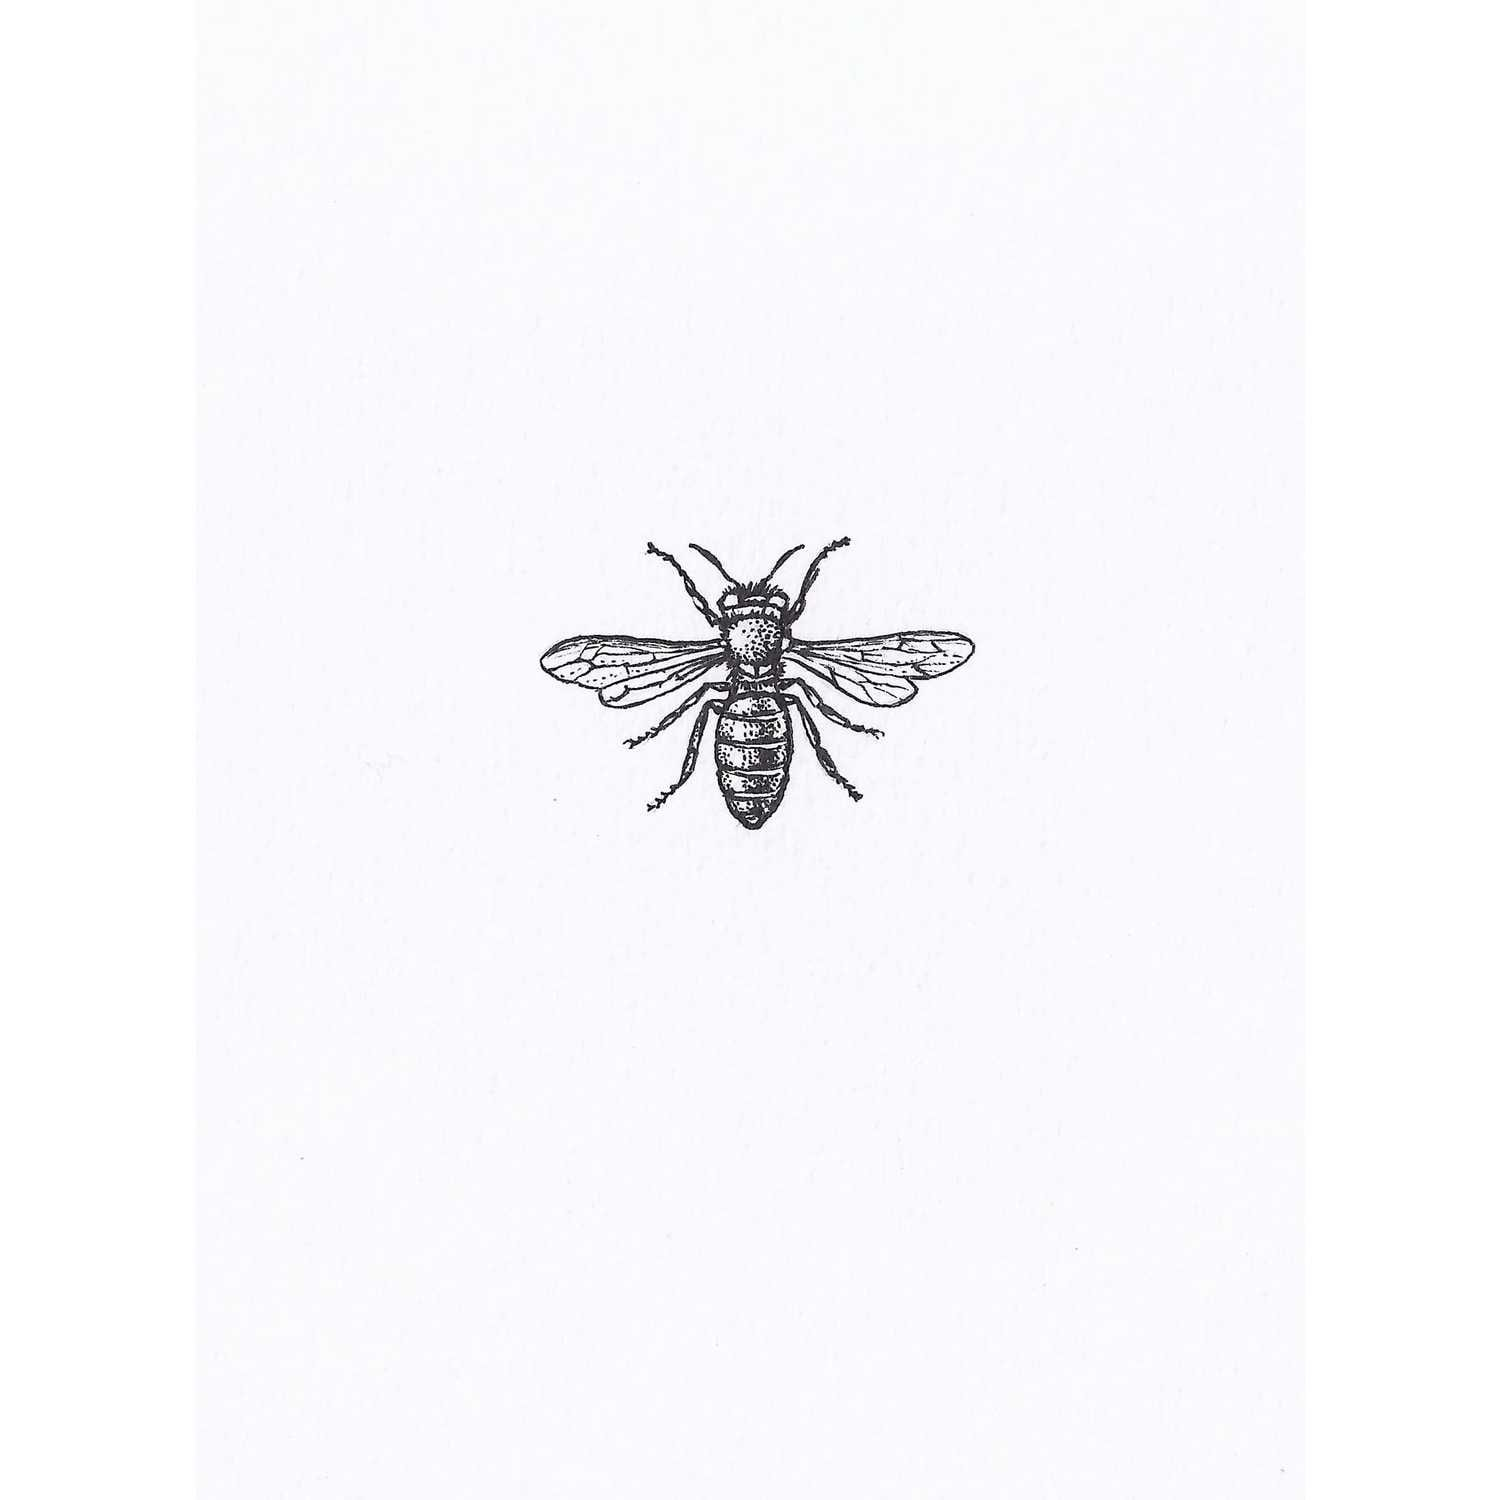 Teeny Weeny Bumble Bee Intricate Ink Print-0